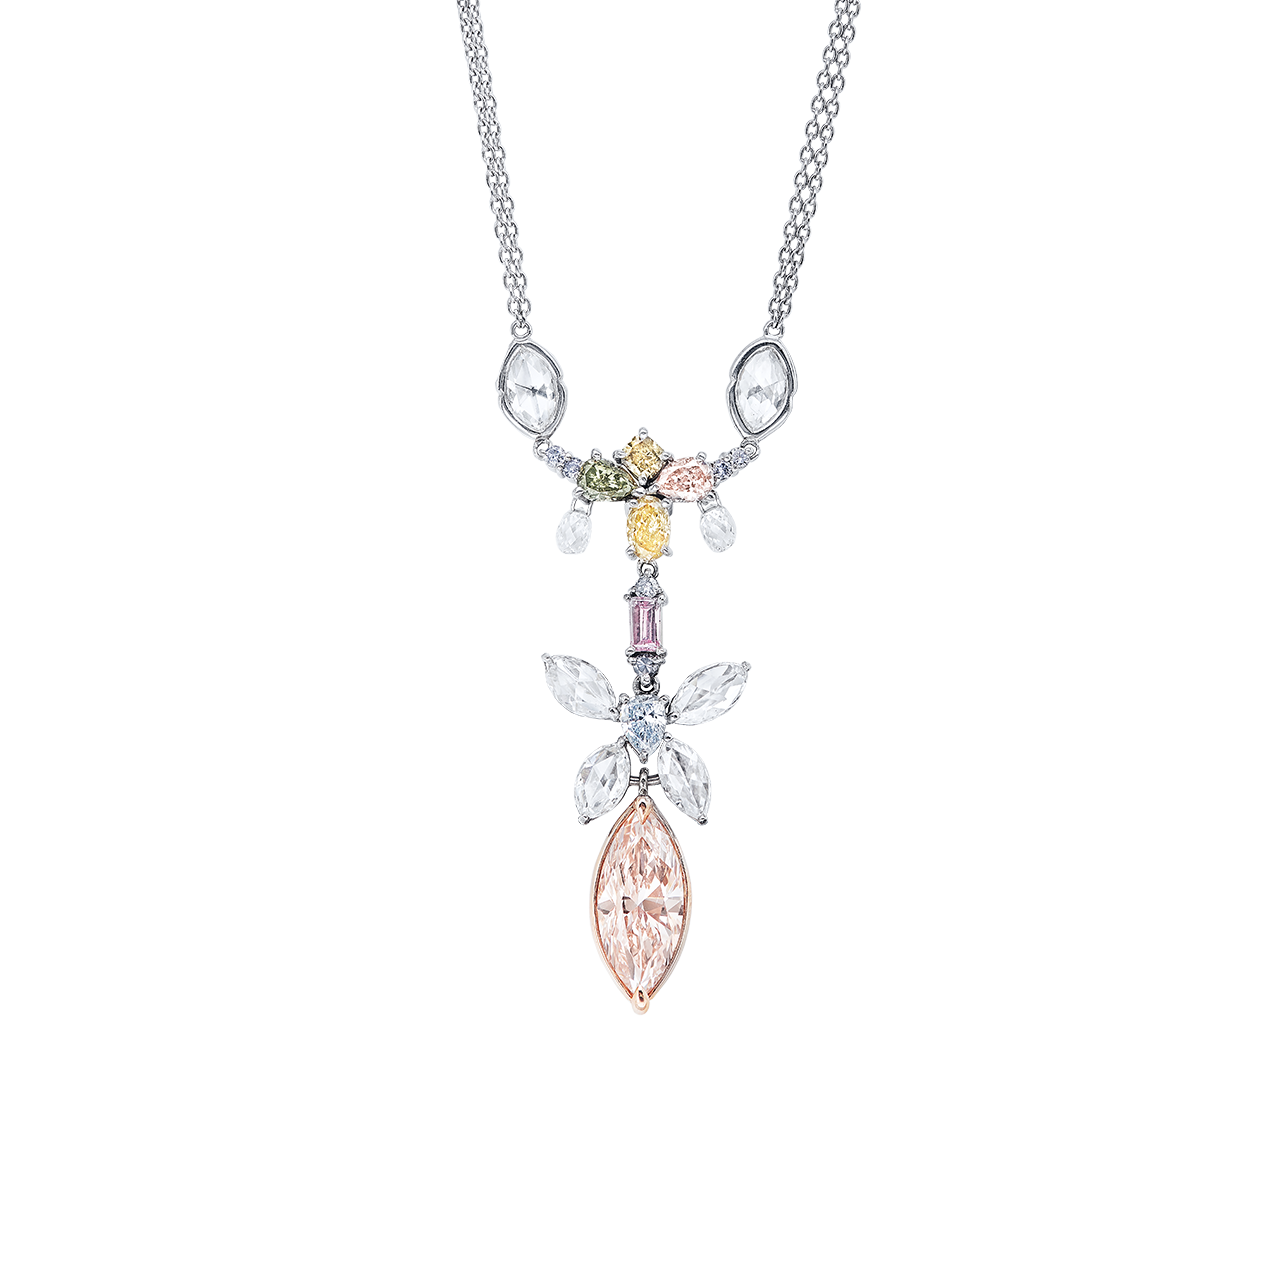 GIA 彩鑽鑽石套鍊 7.9公克